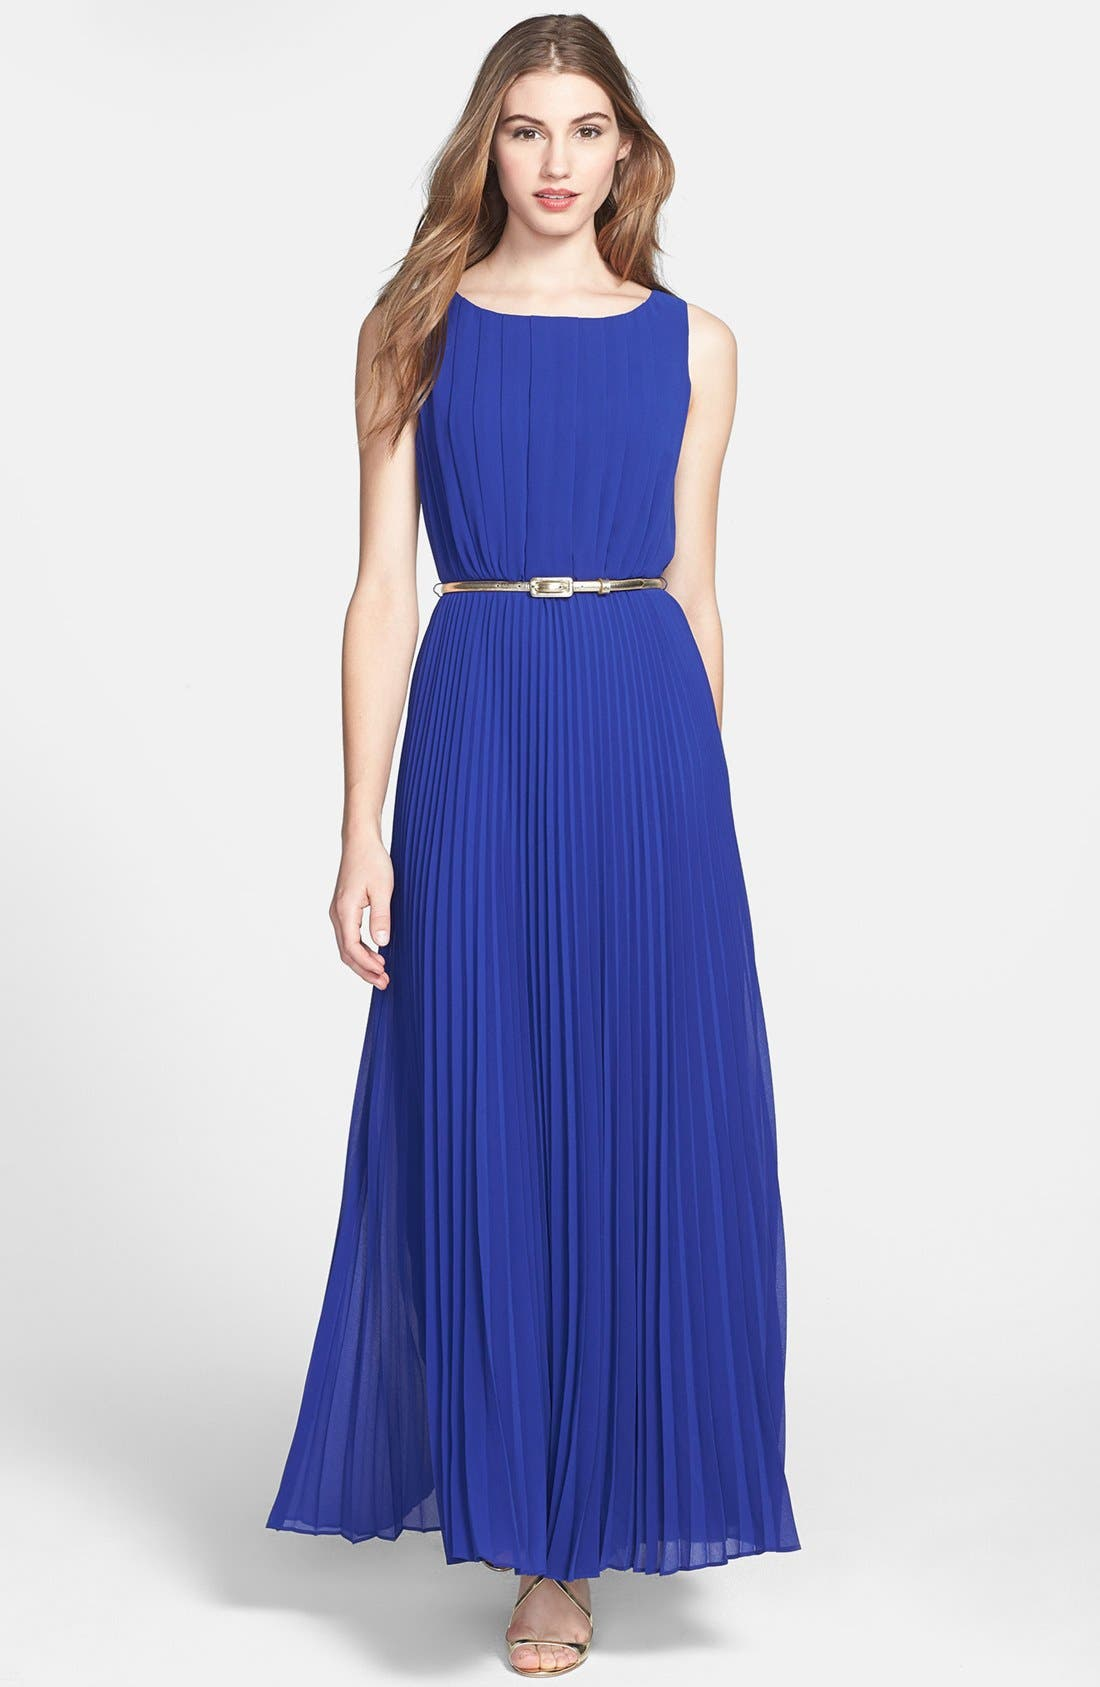 Pleat Chiffon Maxi Dress,                             Main thumbnail 1, color,                             Royal